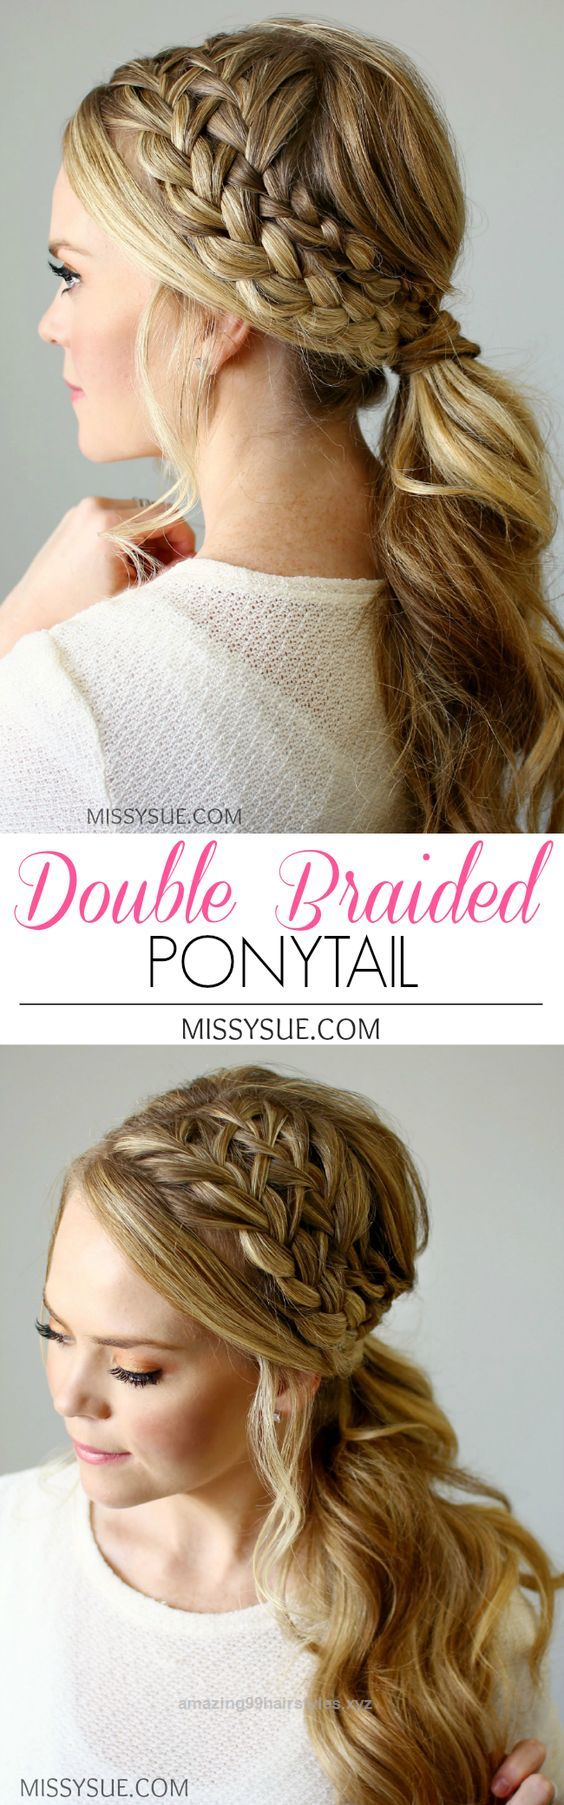 Hairstyles With Braids to Look Cool Every Day